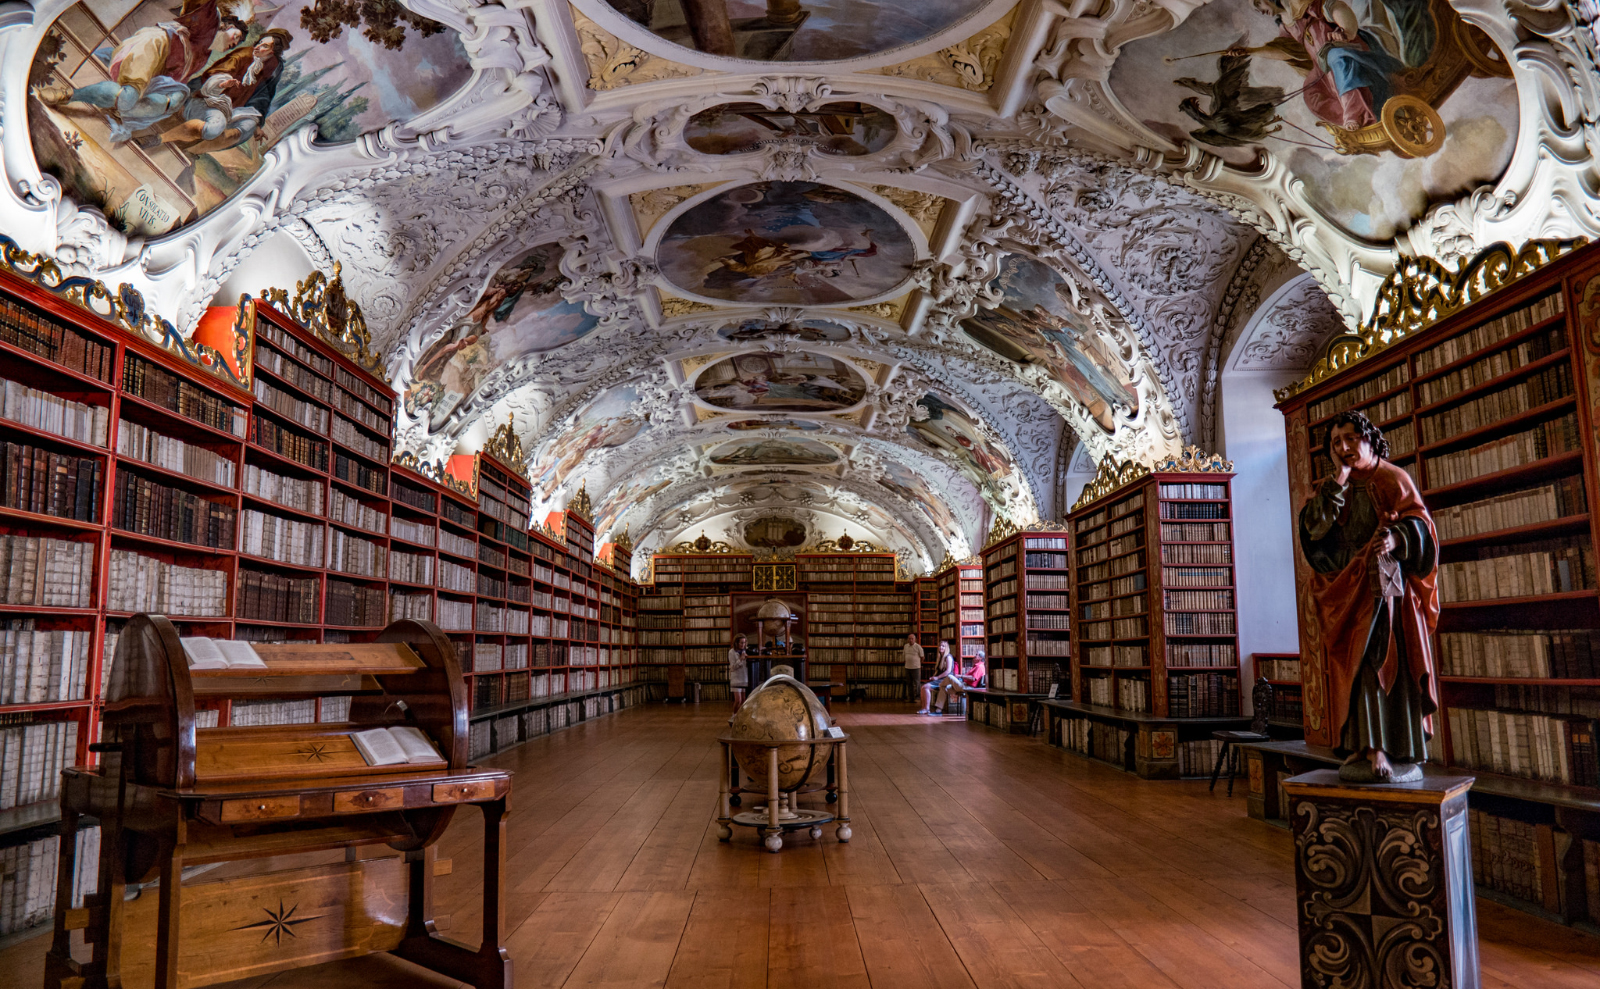 the theological hall of the strahov monastery library